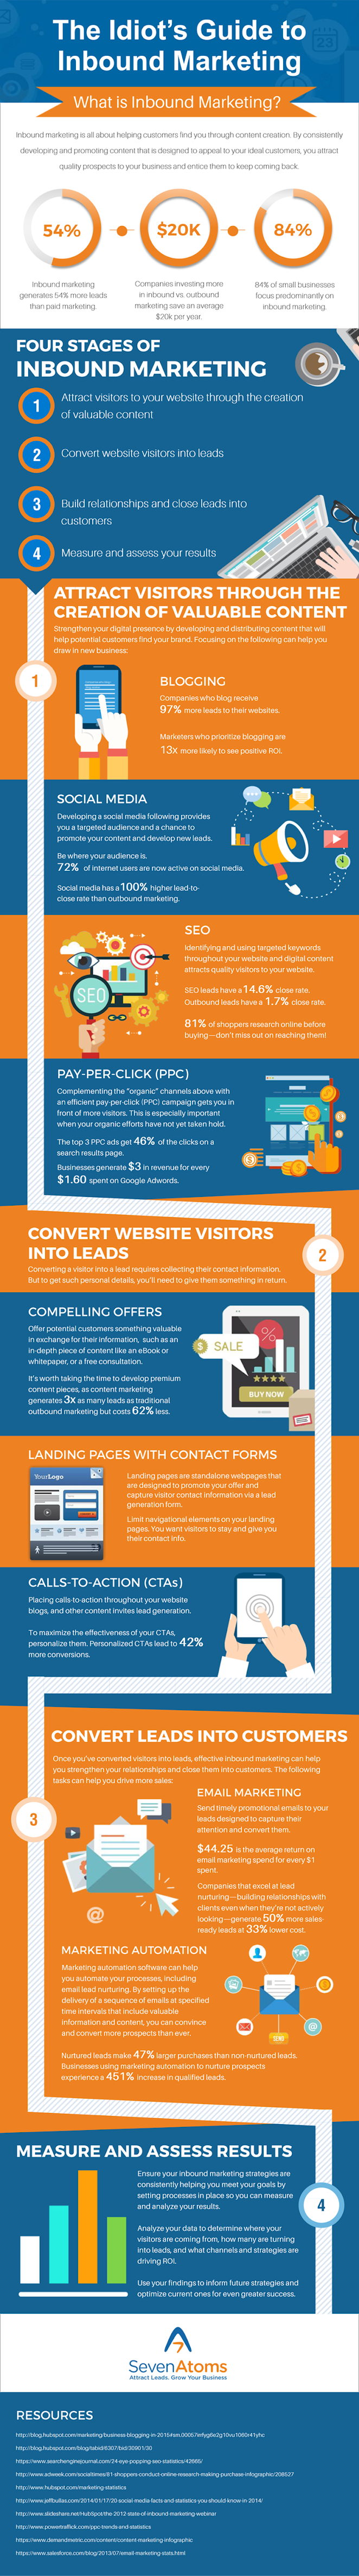 The Idiot's Guide To Inbound Marketing #infographic #Marketing #infographics #Inbound Marketing